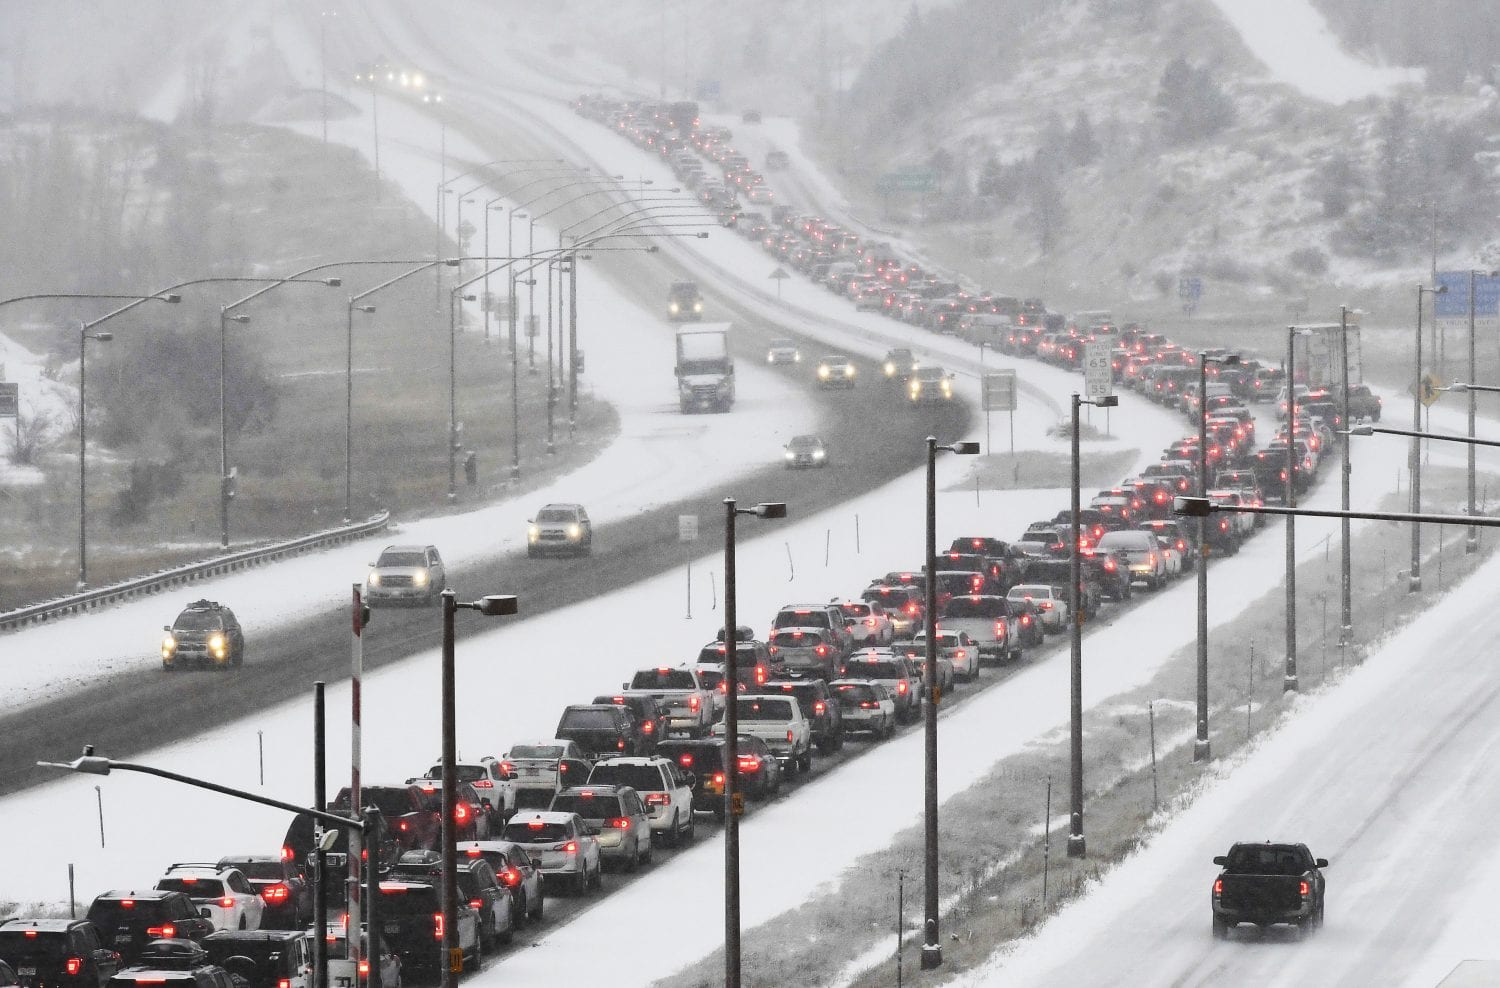 Traffic on Interstate 70 from Denver. Delays from weather and big surge of travelers